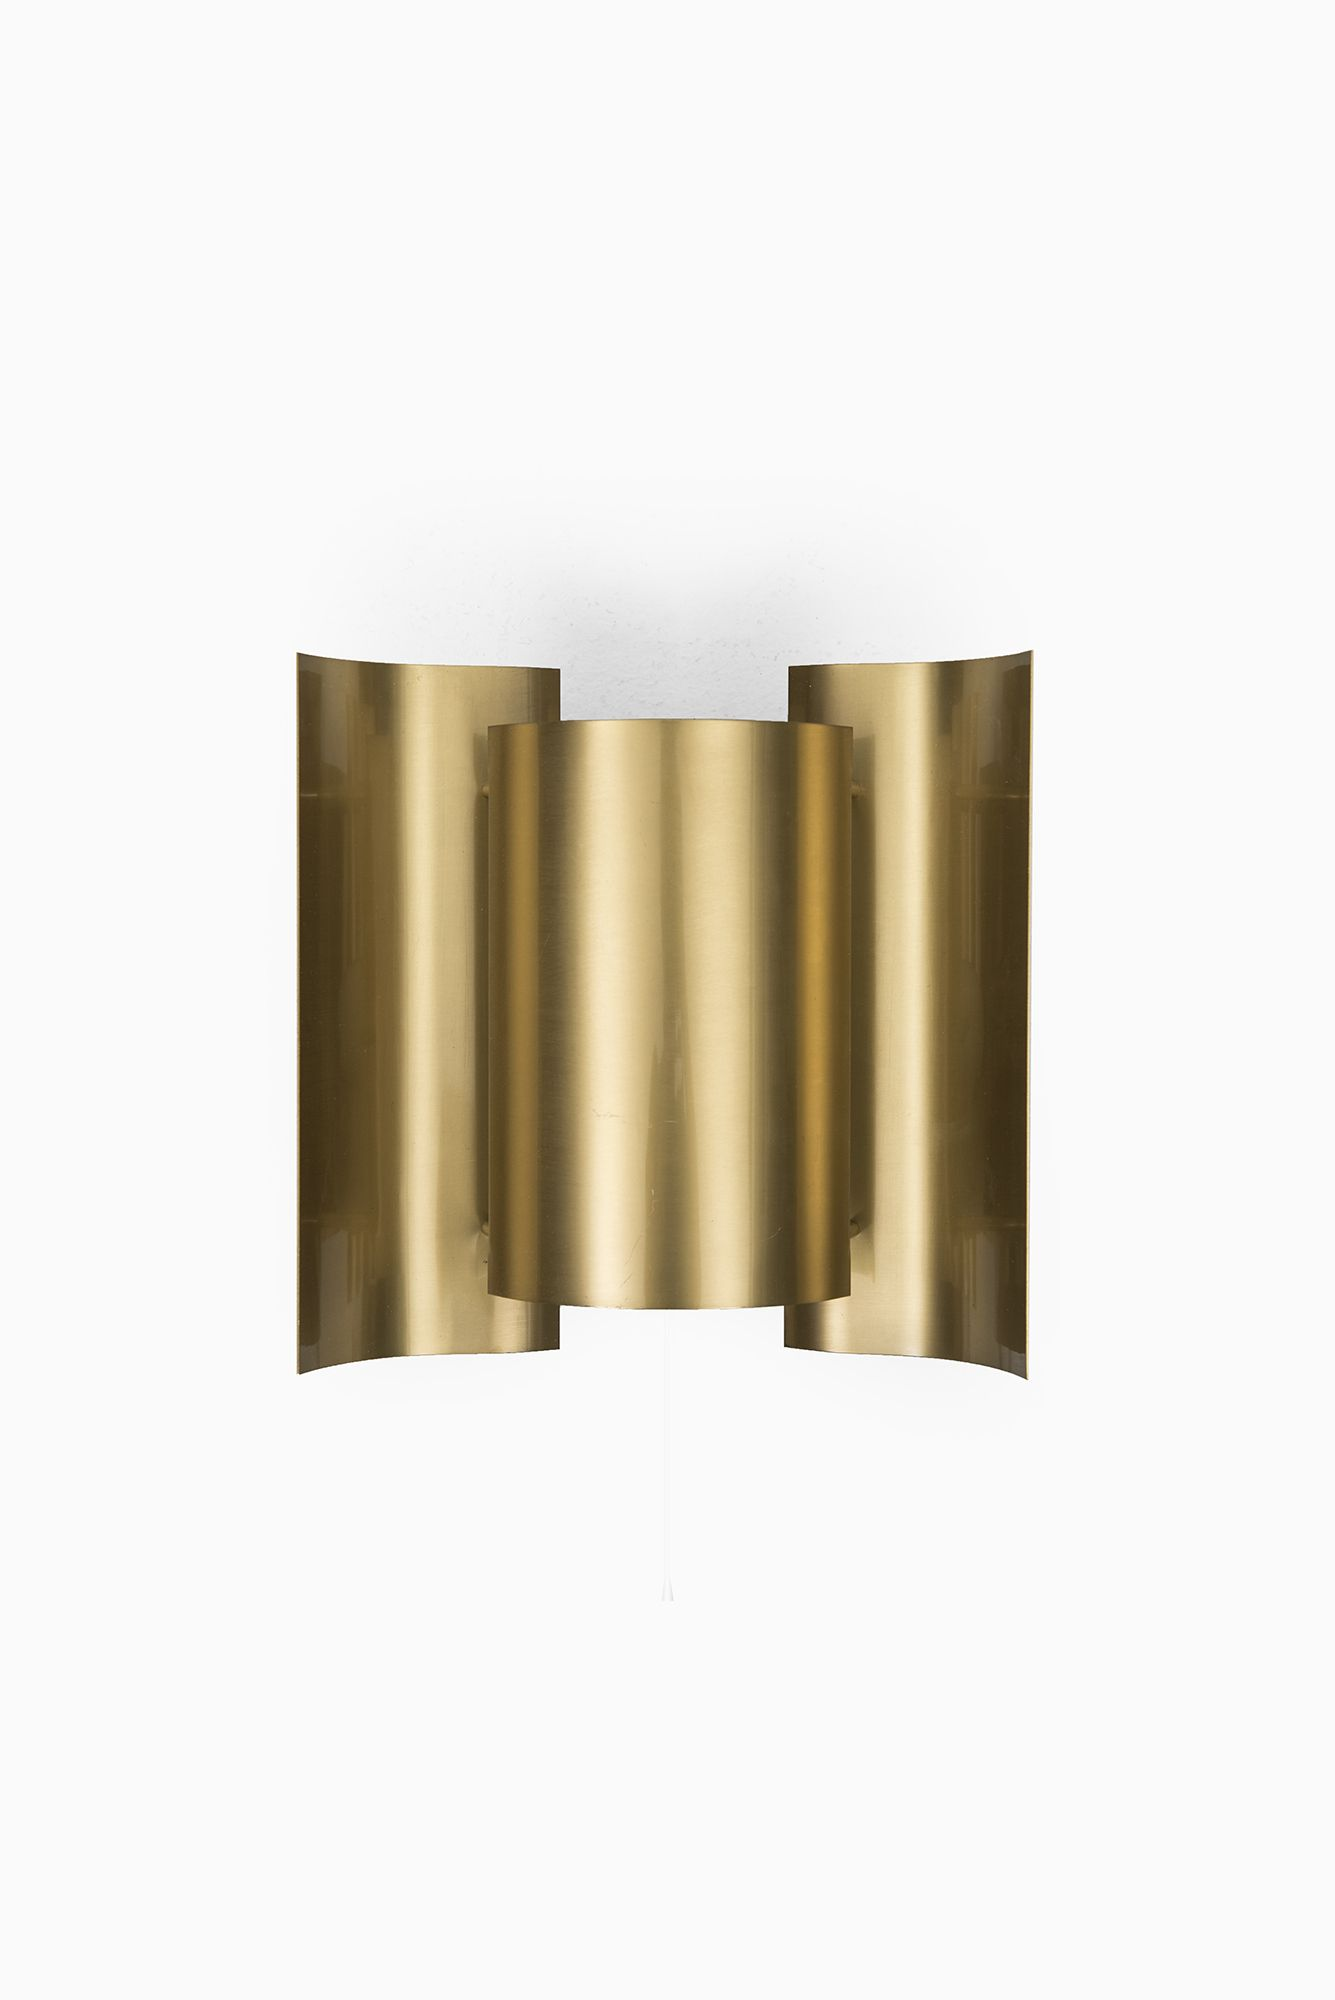 A set of 4 wall lamps in brass at studio schalling lighting wall a set of 4 wall lamps in brass at studio schalling aloadofball Images